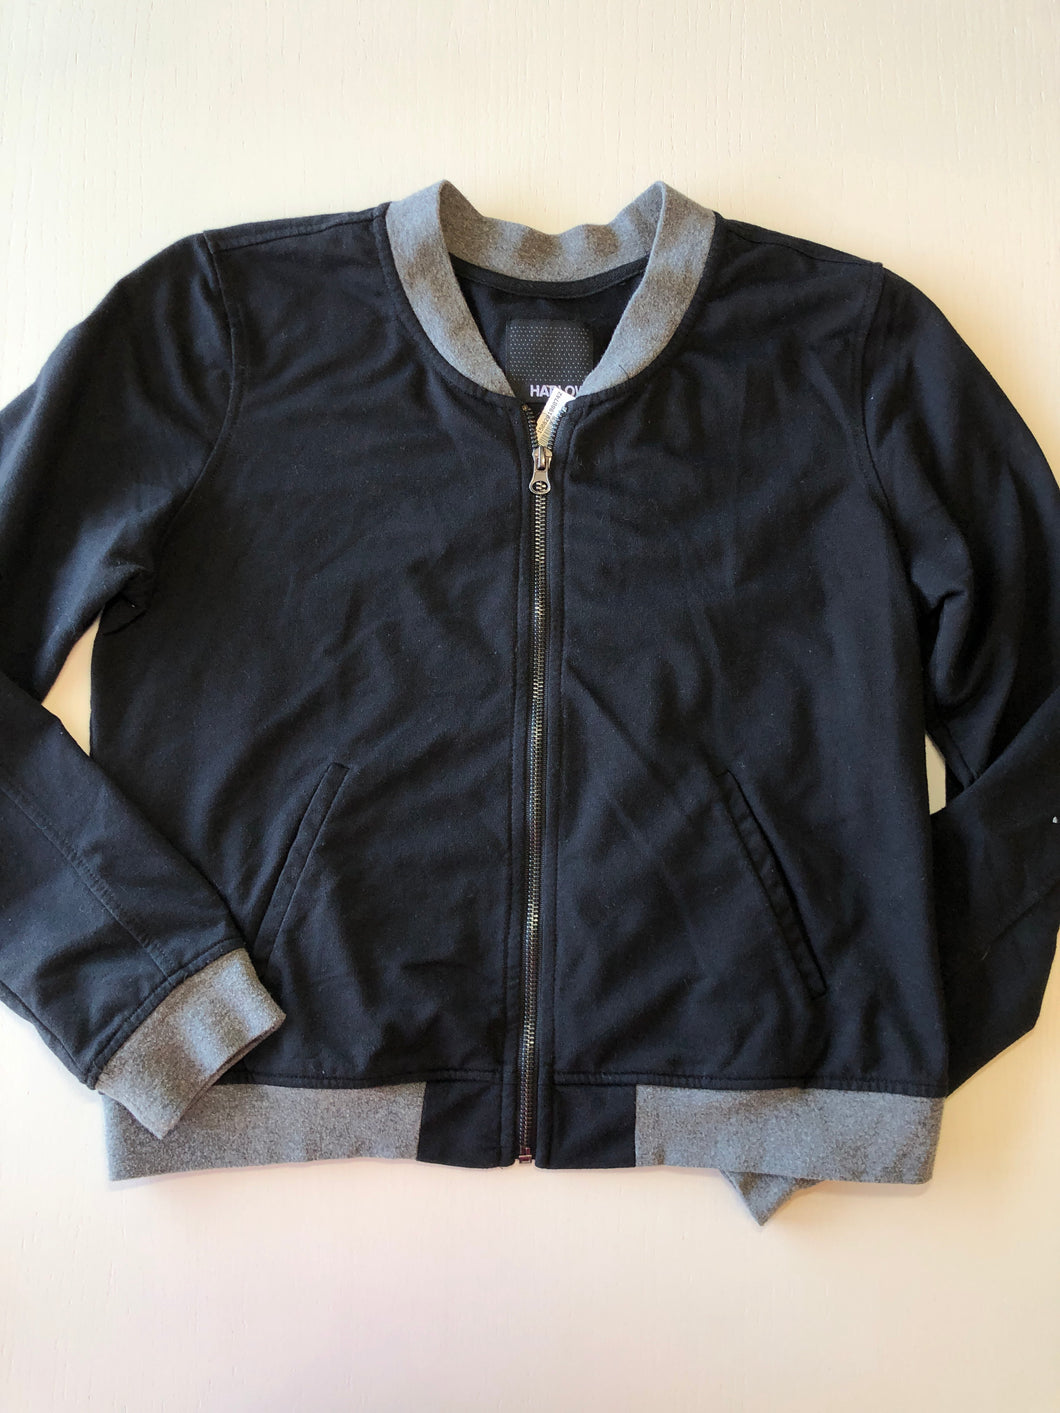 Gently Used Women's Harlow Jacket Size S